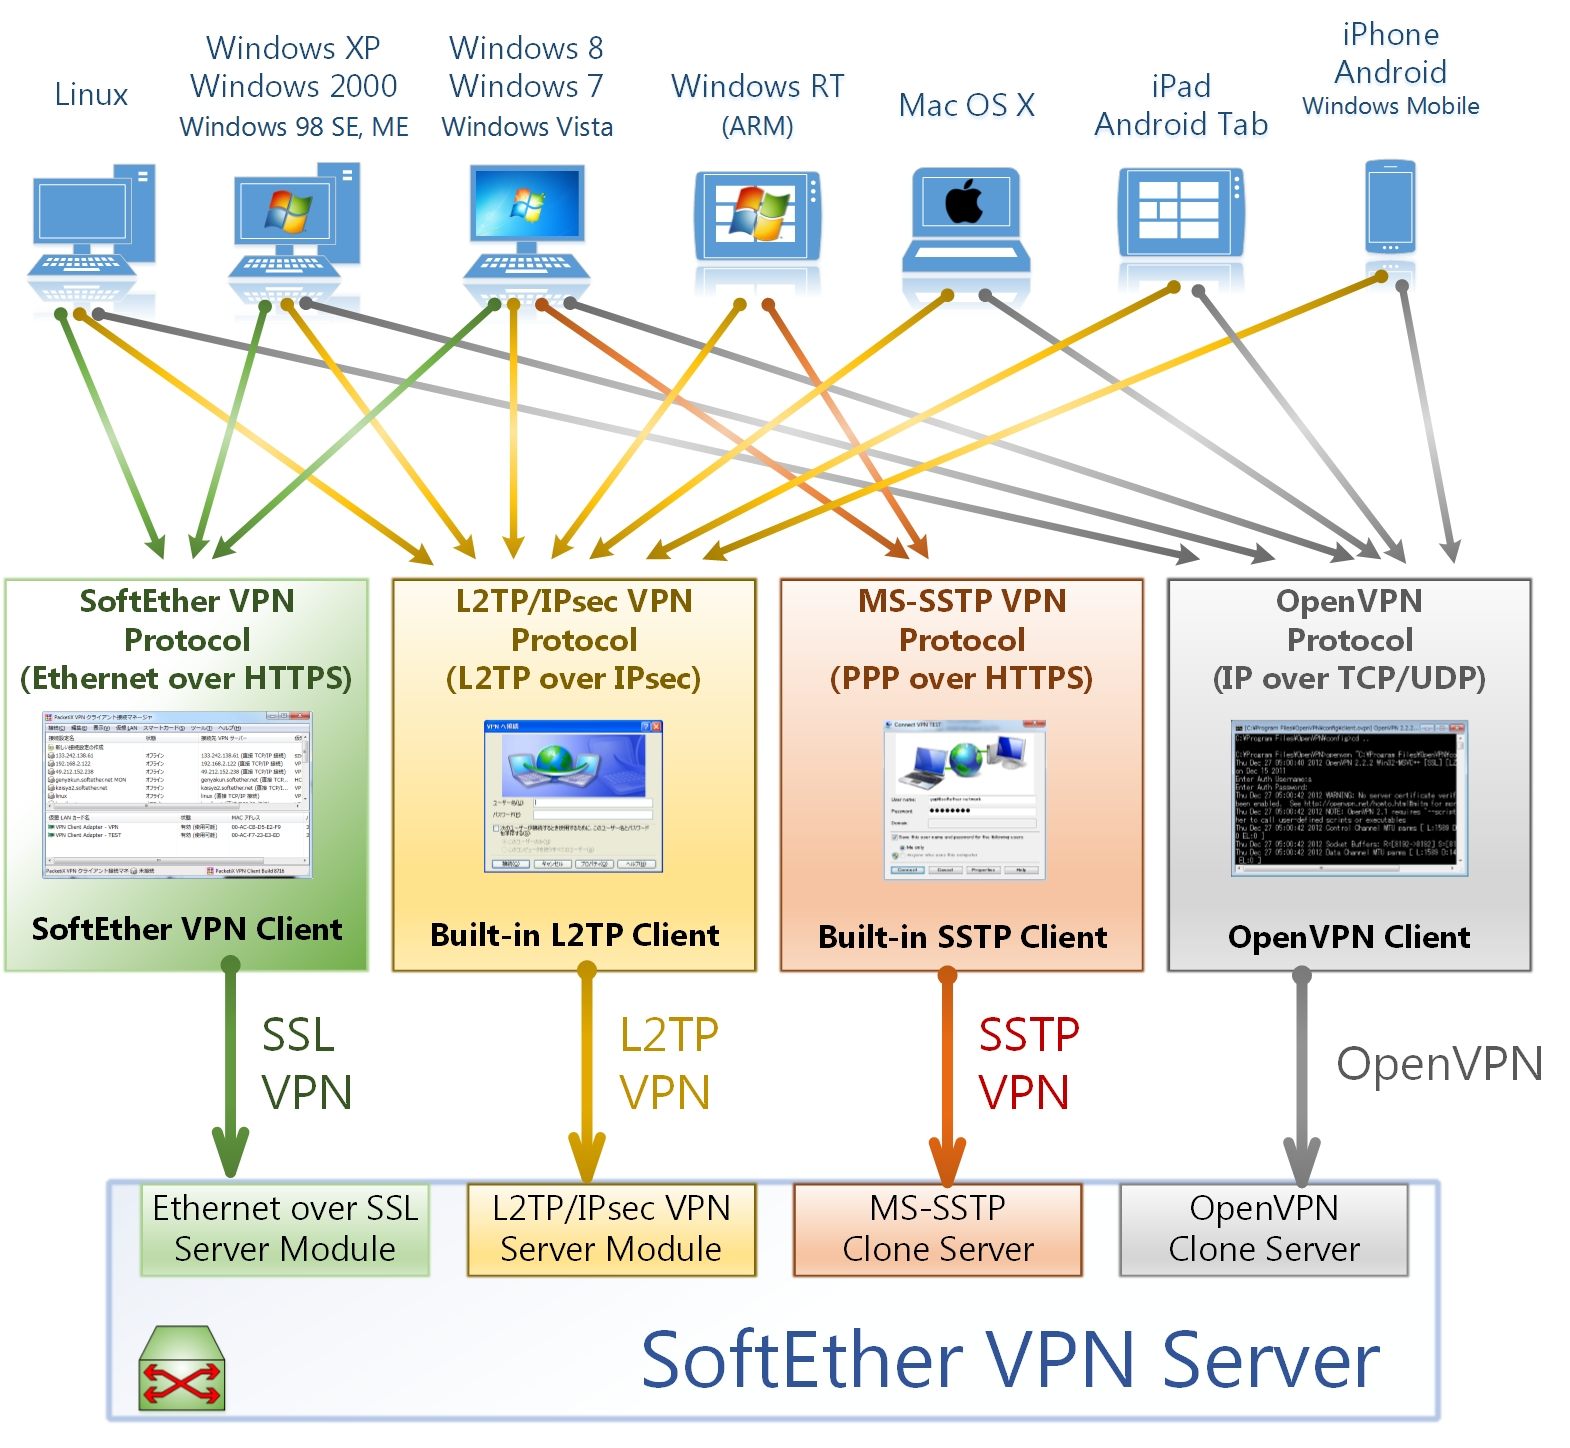 The SoftEther VPN server architecture